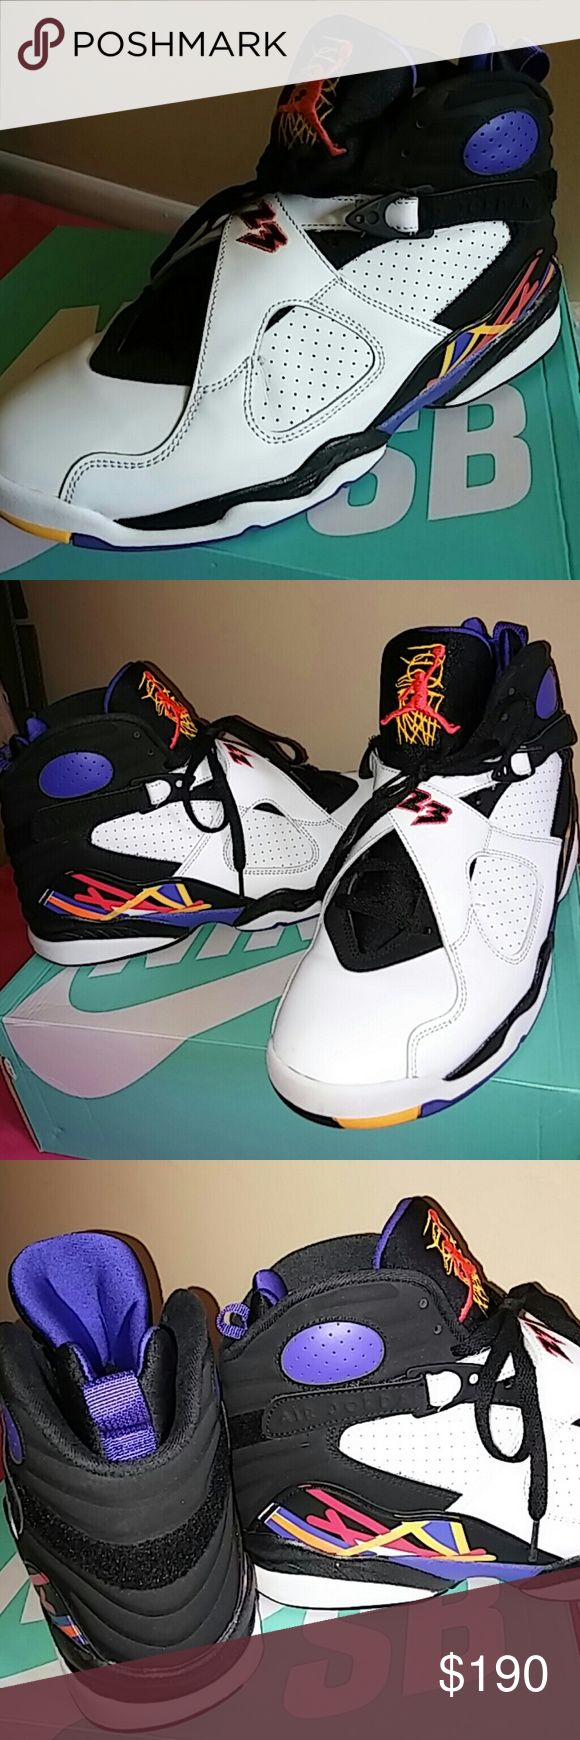 2015 Nike Air Jordan 8 Retro Peat Wht Infrd Concd. Shoes is worn ONLY 2 TIMES outdoor and that's it. Looks perfectly like Brand New. Shoes # is 305381-142. Shoes is MEN SIZE 11. Guaranteed to be 200% authentic nike product. Rated 9.9/10. Sorry i miss original box but will come in a nike replacement box. Nike Shoes Sneakers